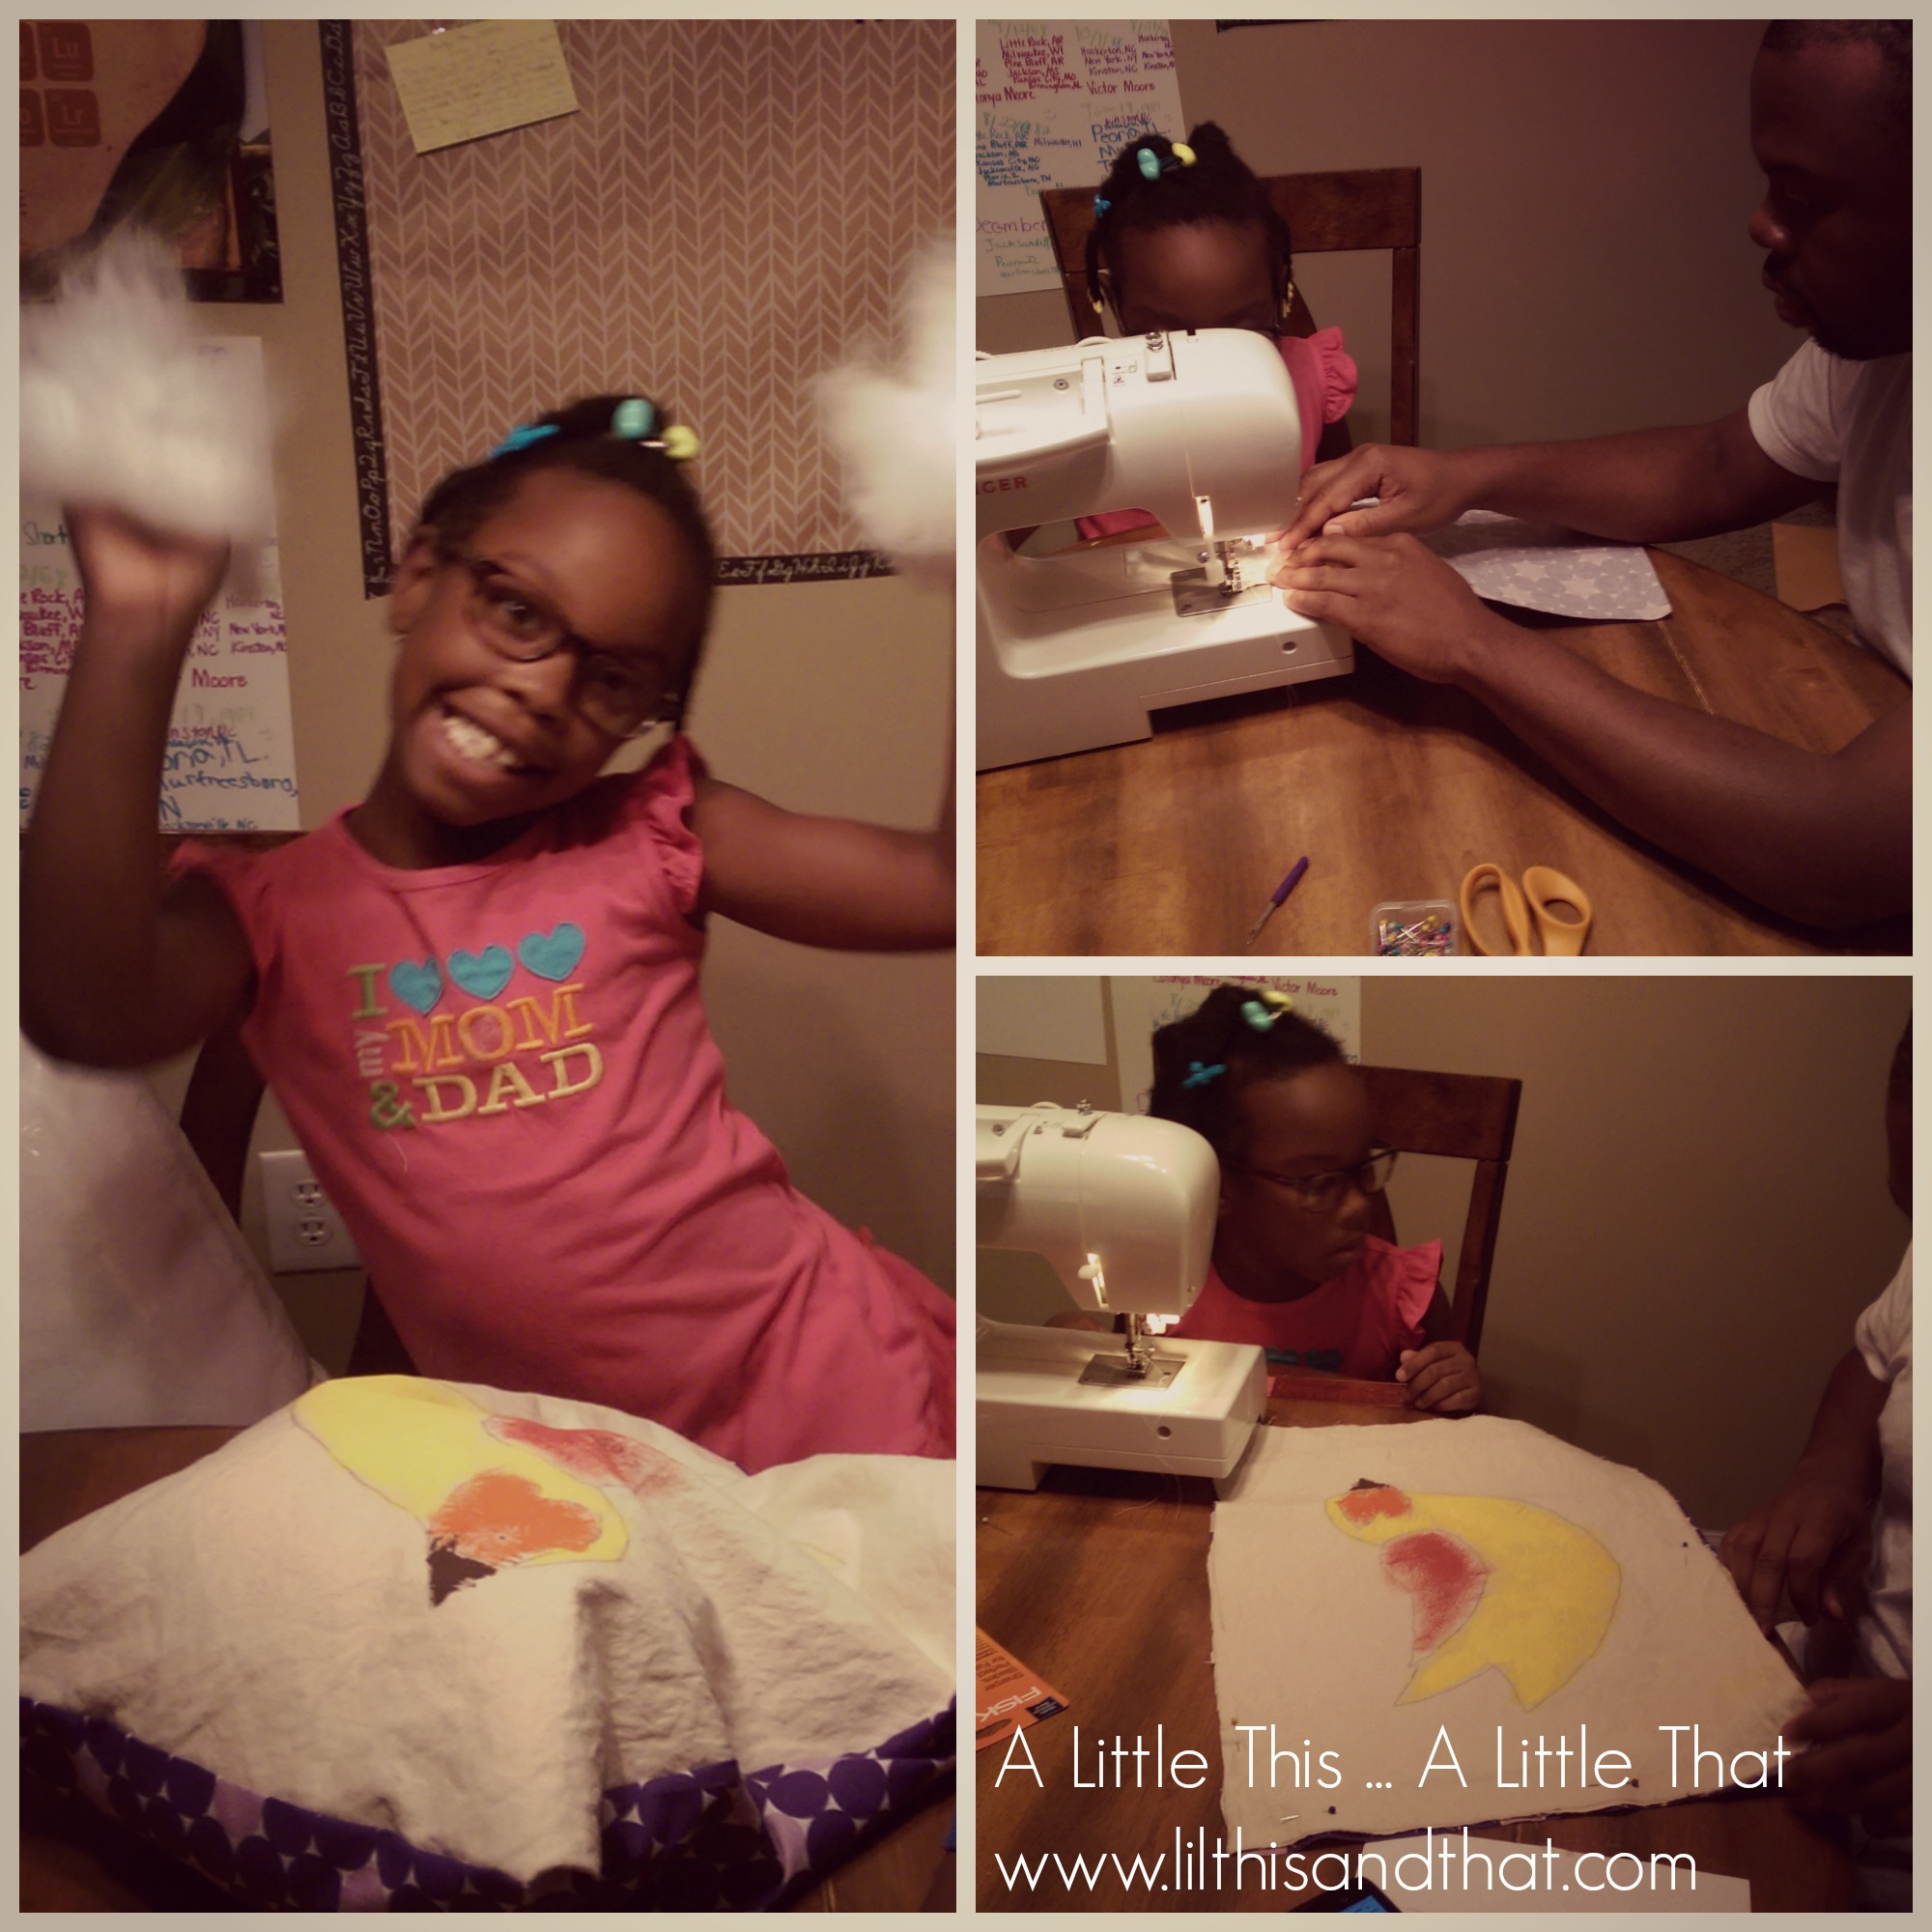 She is having lots of fun sewing with her dad.